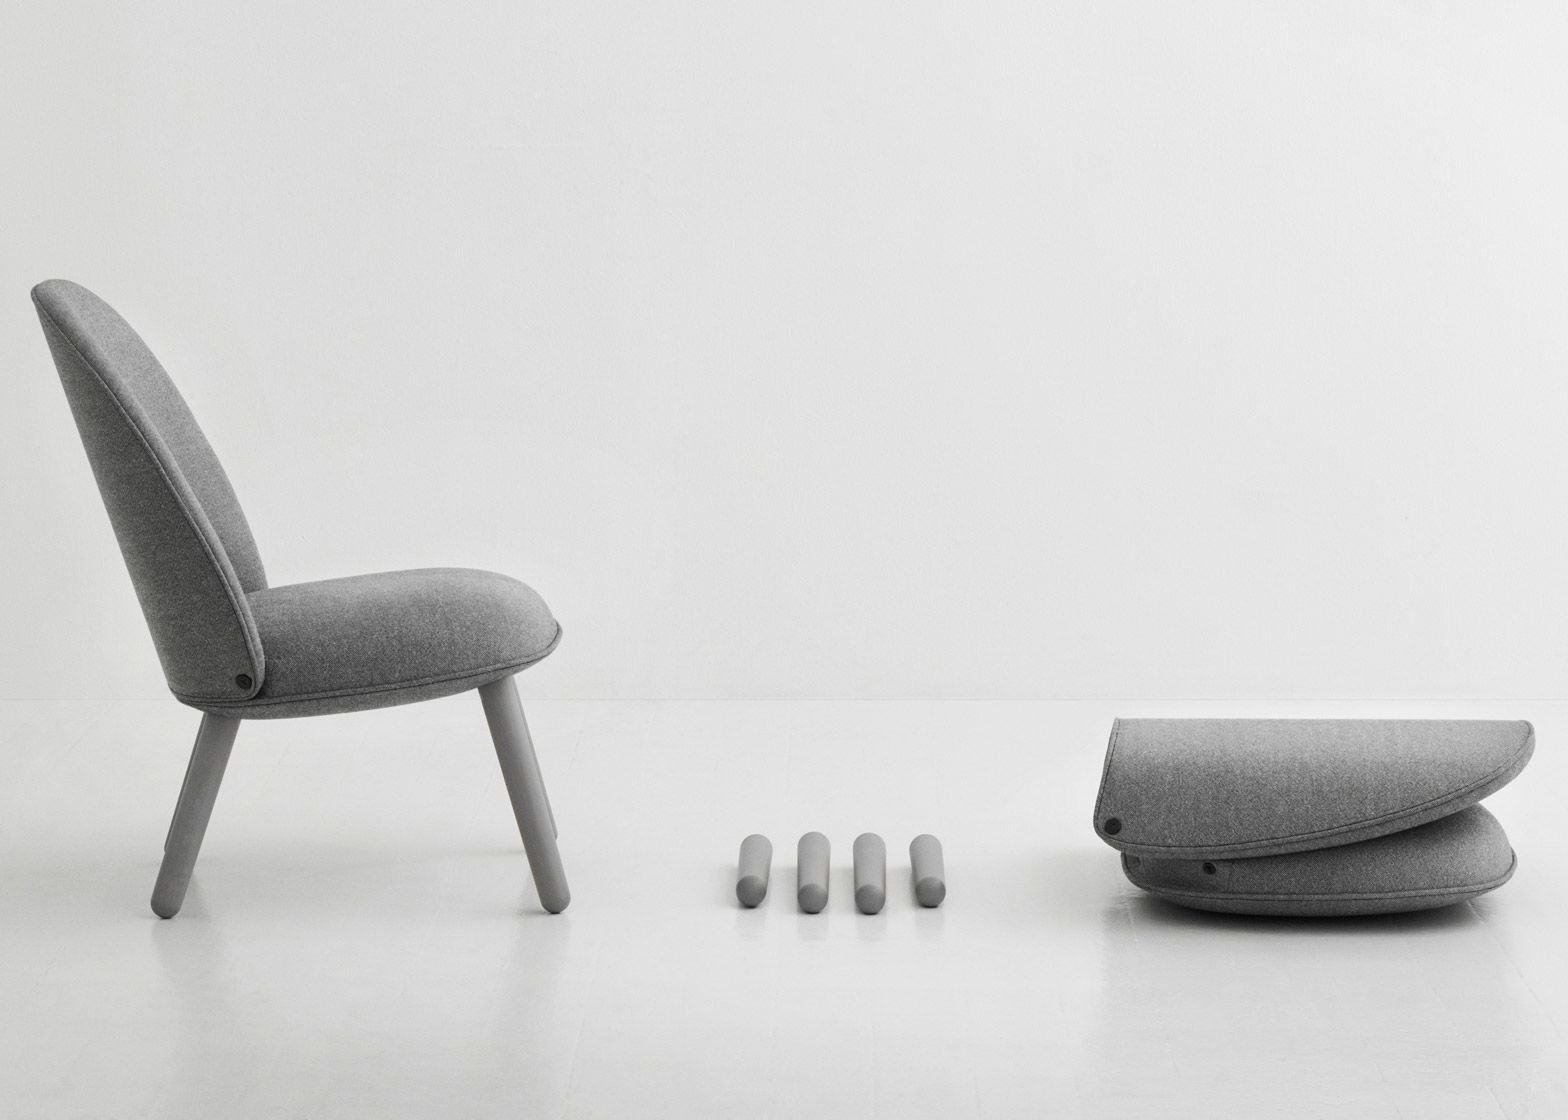 Normann Copenhagen Stoel : Normann copenhagen adds flat pack seating to collection lounge